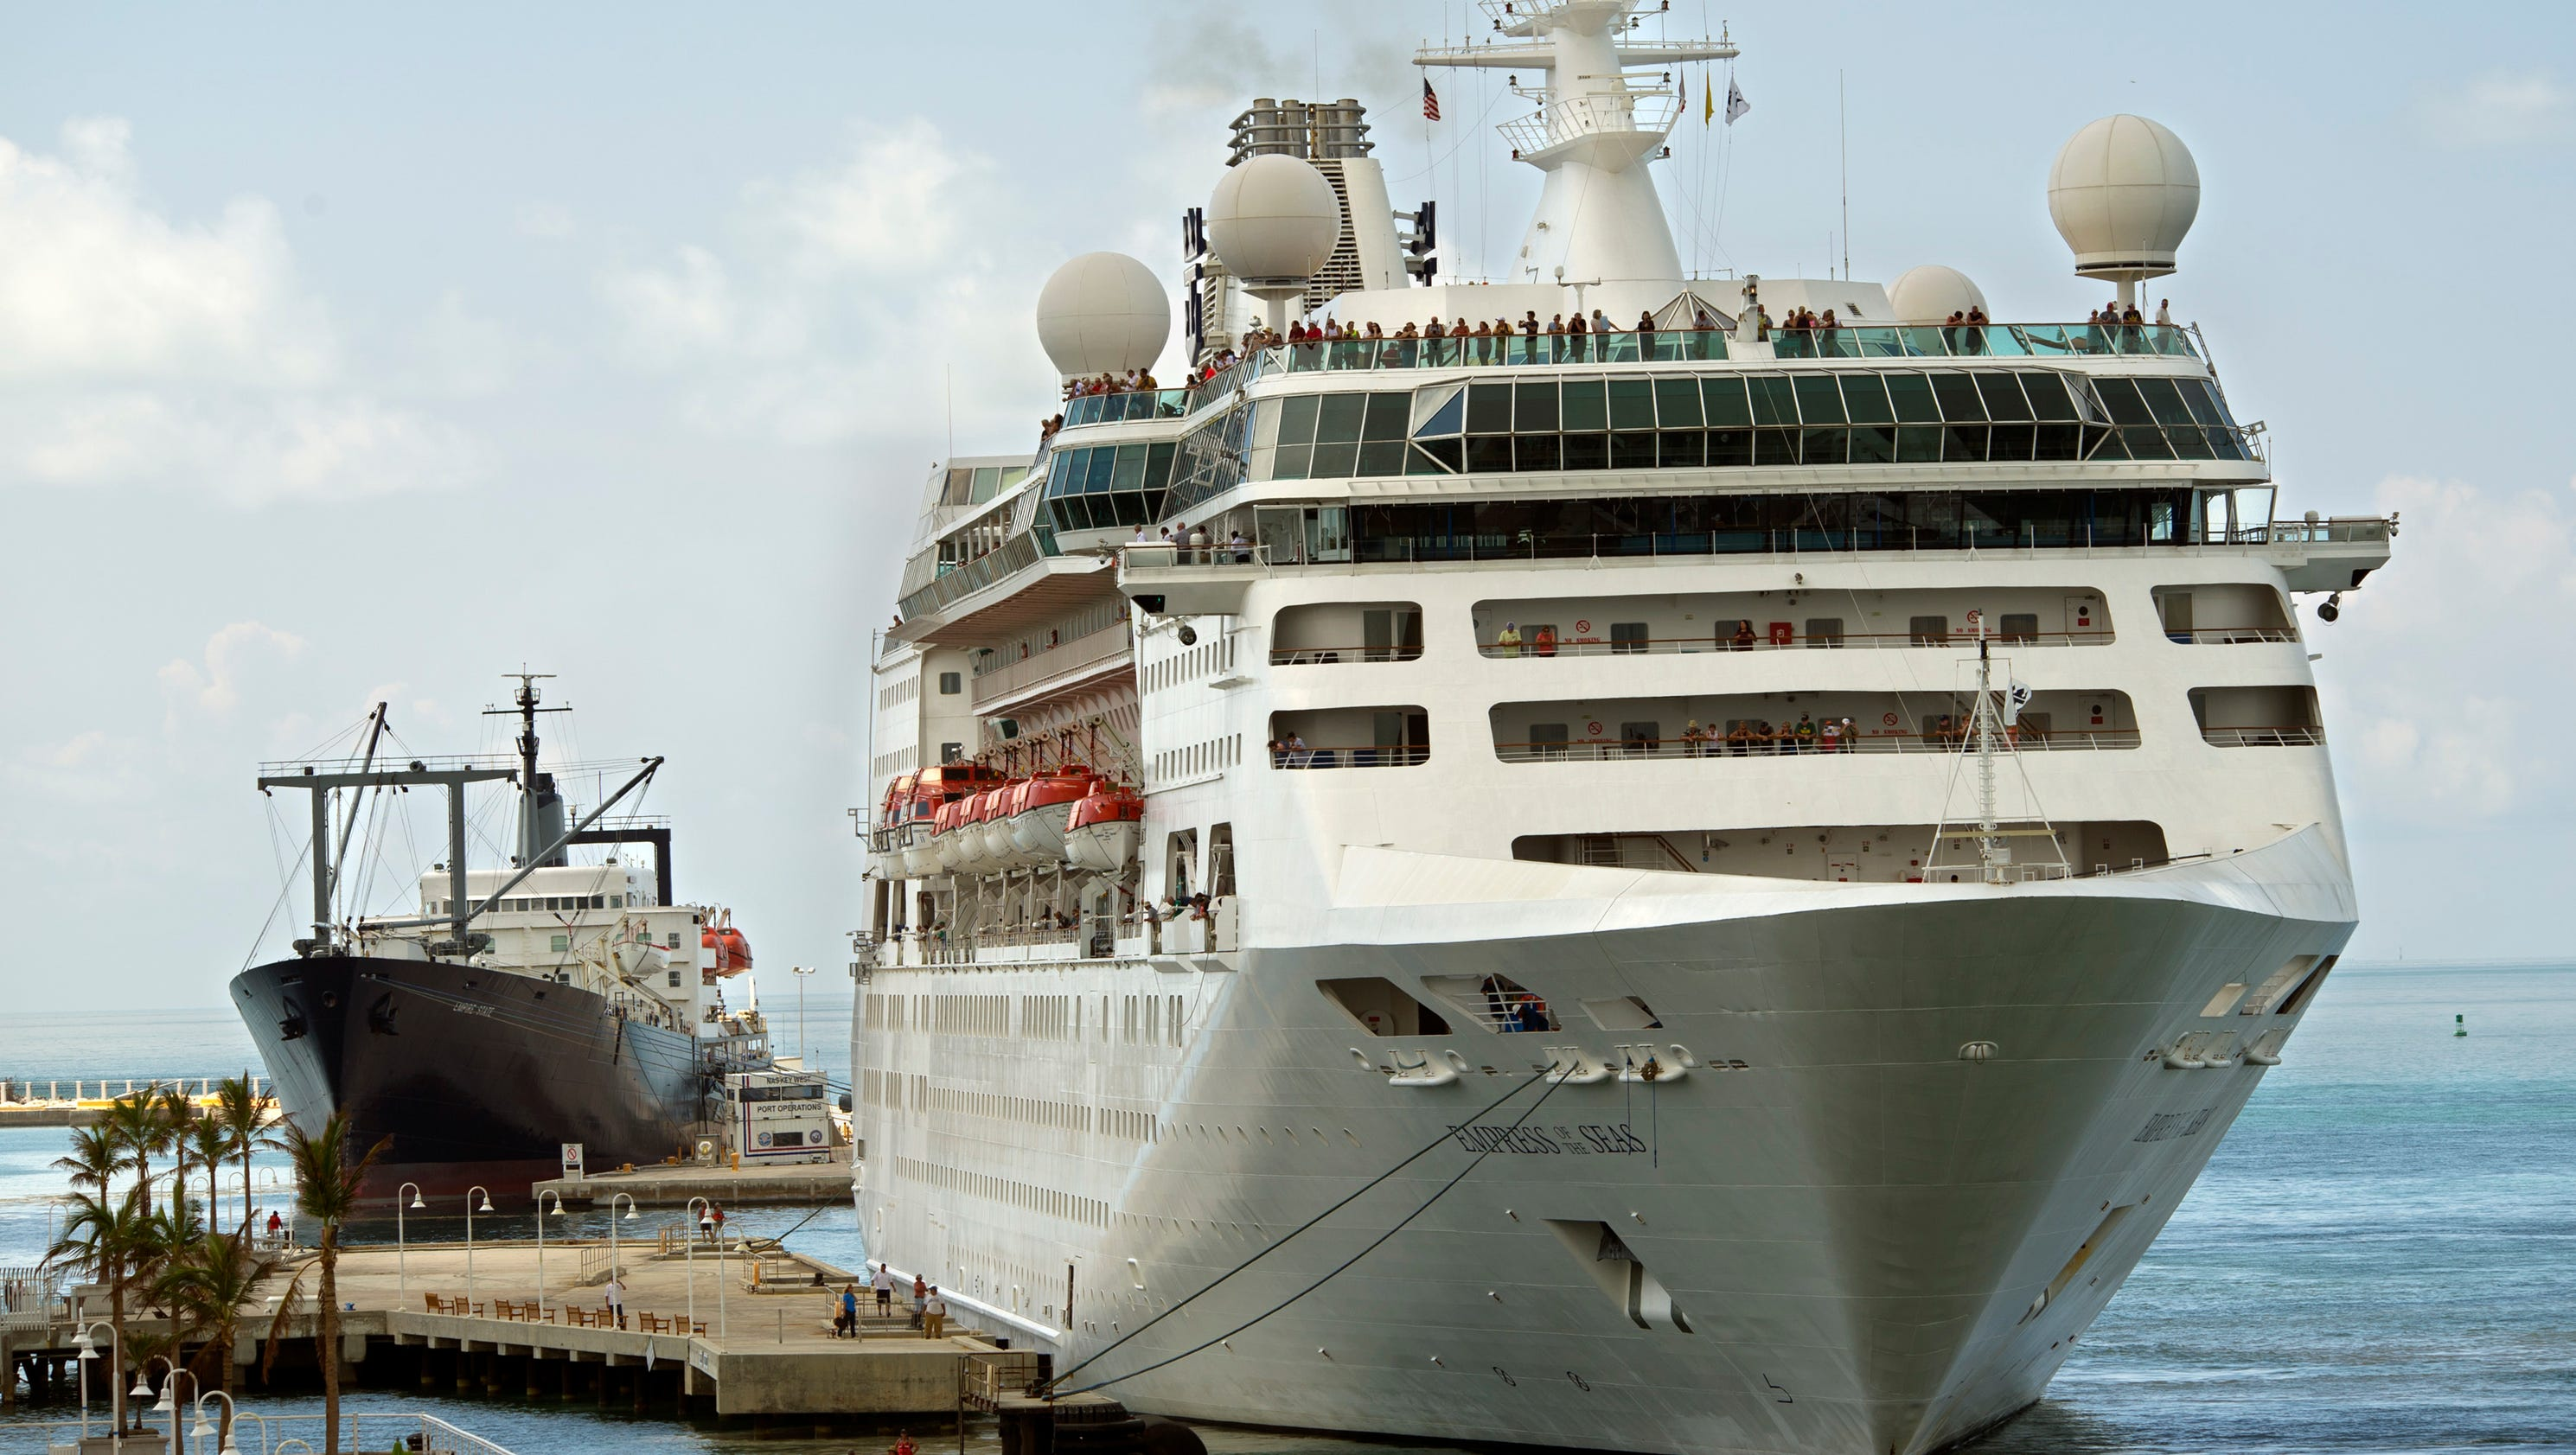 Hurricane Irma First Cruise Ship Since The Storm Docks In Key West - How many mph does a cruise ship go